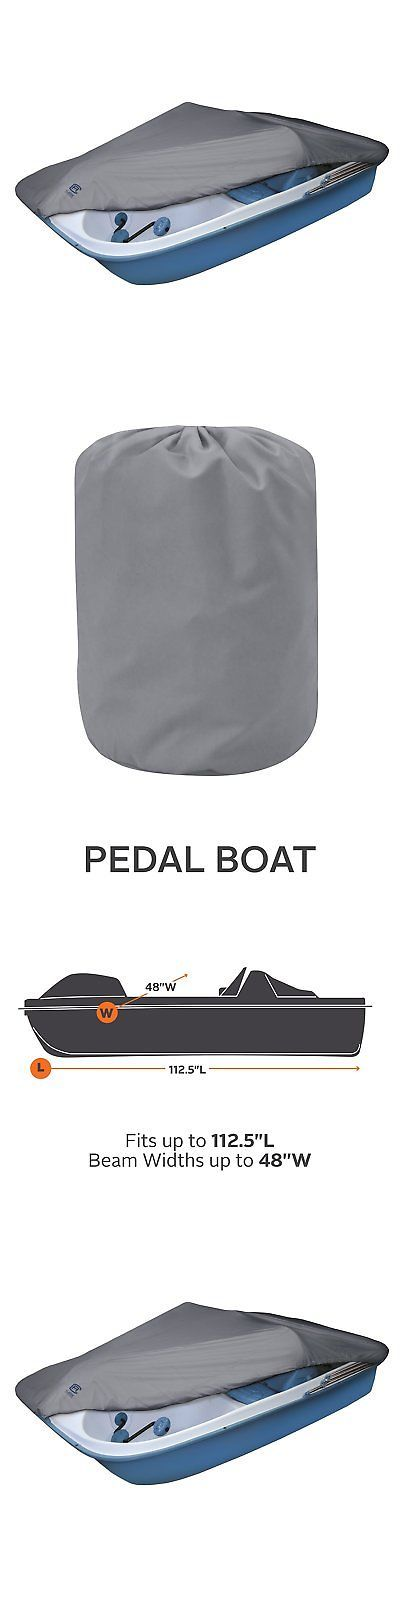 Other Kayak Canoe and Rafting 36123: Pedal Boat Mooring Cover Fit 3, 4, 5 Person People Paddle Petal Storage Pond -> BUY IT NOW ONLY: $39.39 on eBay!